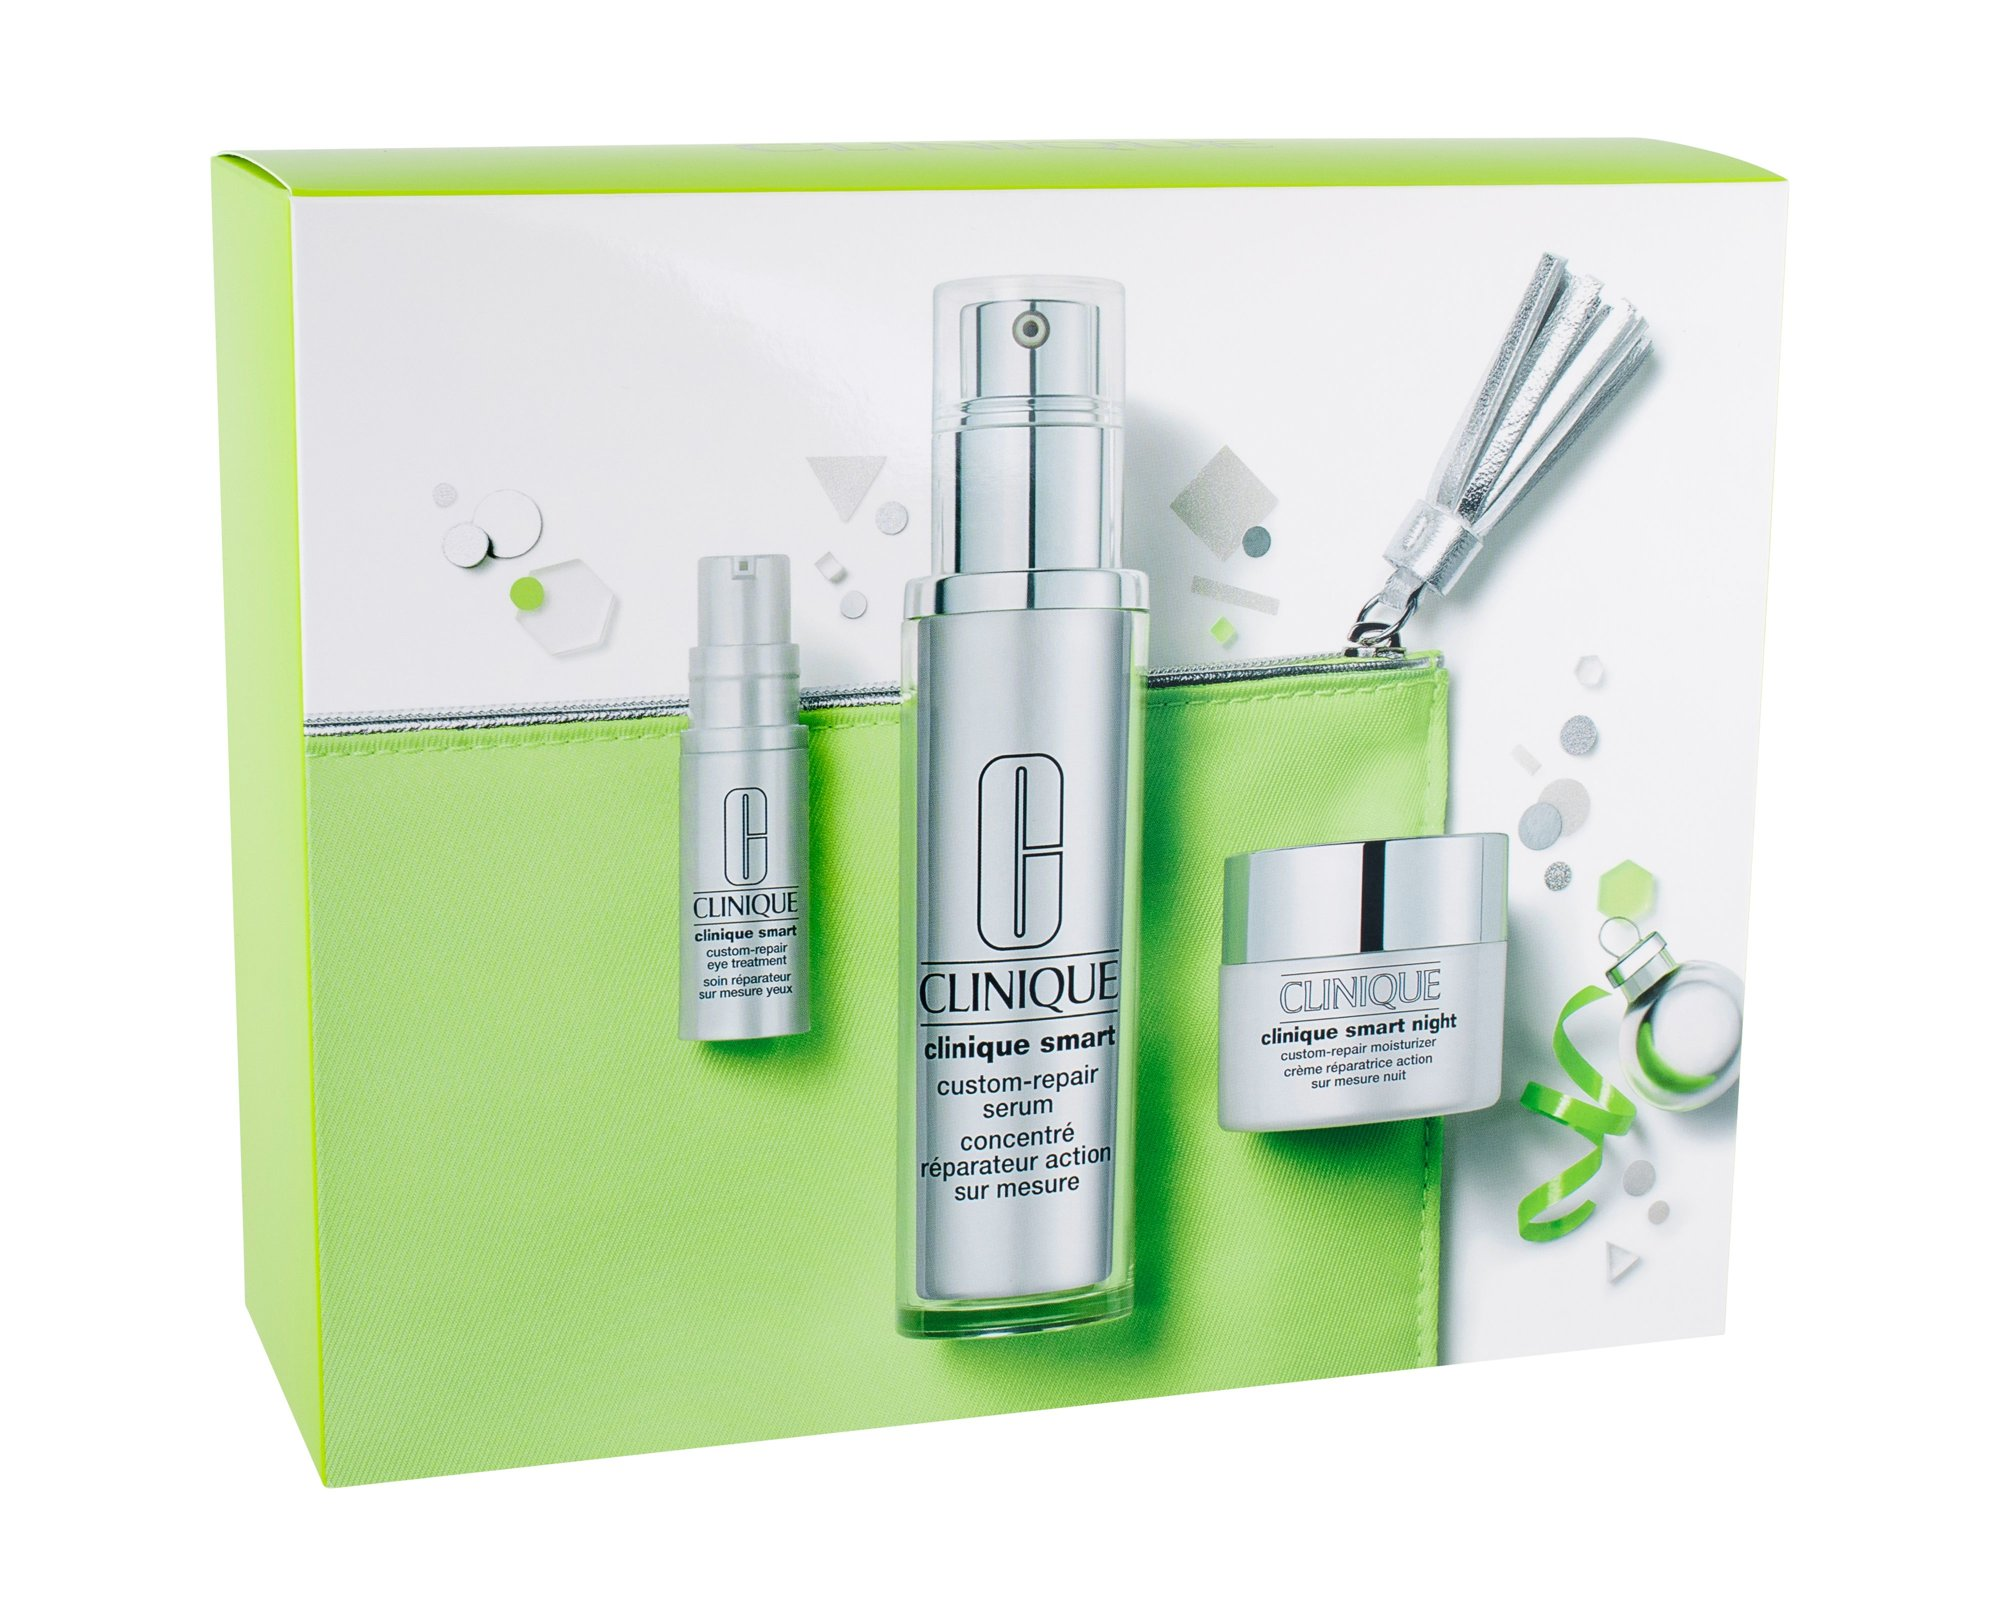 Clinique Clinique Smart Cosmetic 50ml